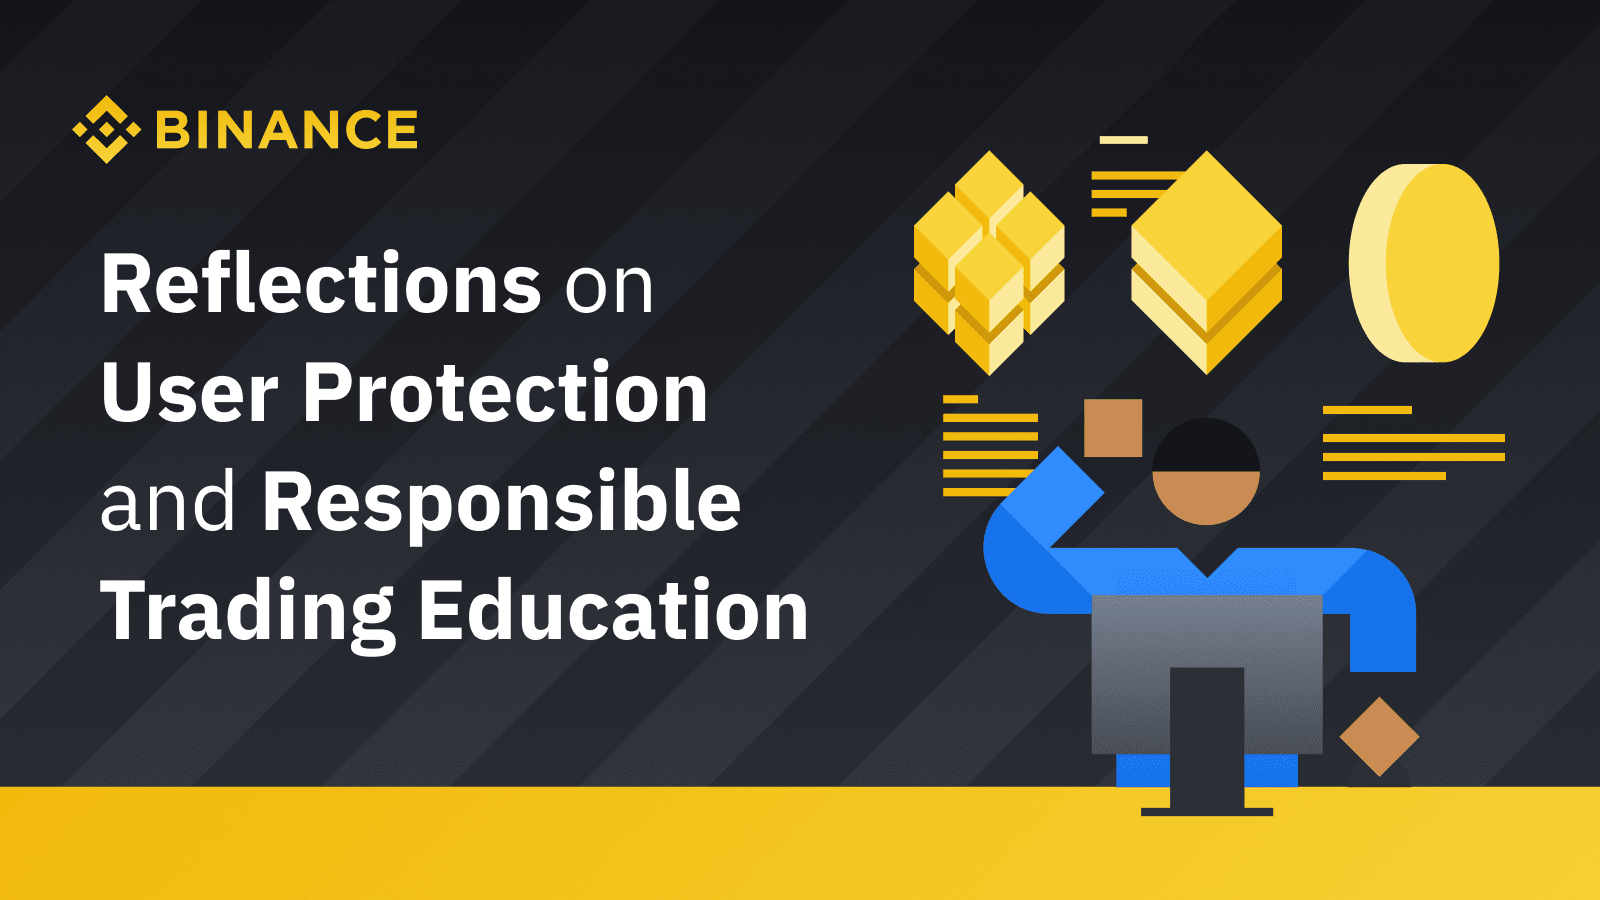 Reflections on User Protection and Responsible Trading EducationCryptocurrency Trading Signals, Strategies & Templates | DexStrats